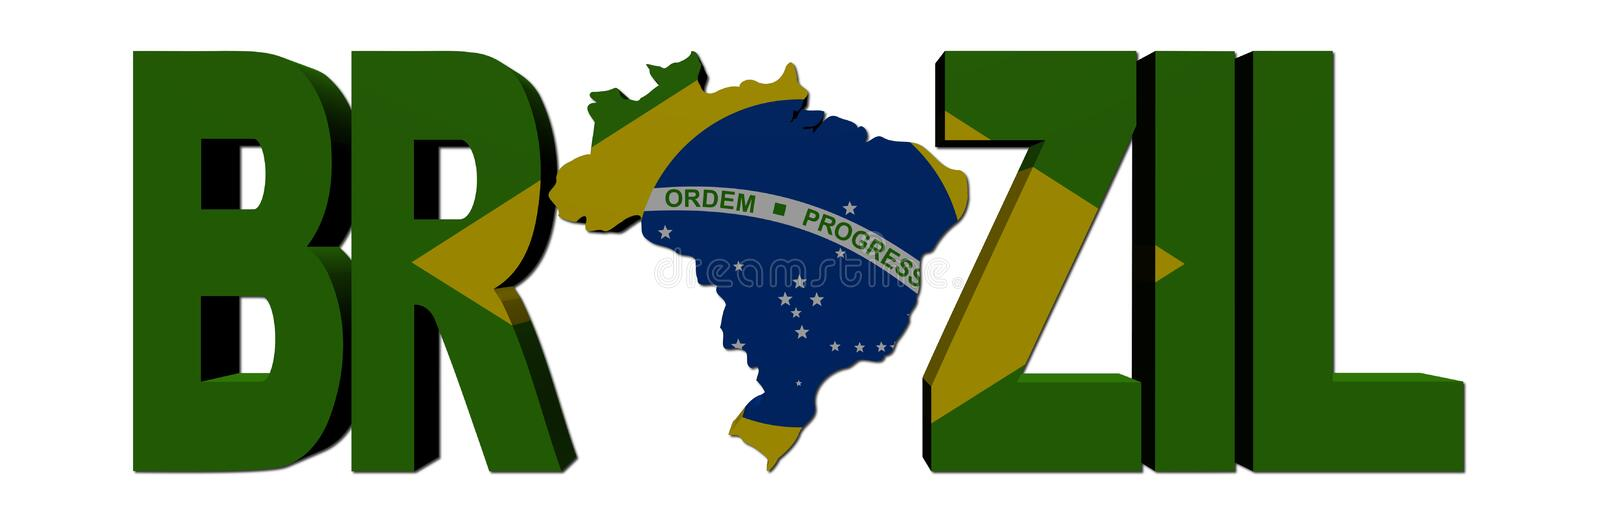 Brazil map text with flag royalty free illustration